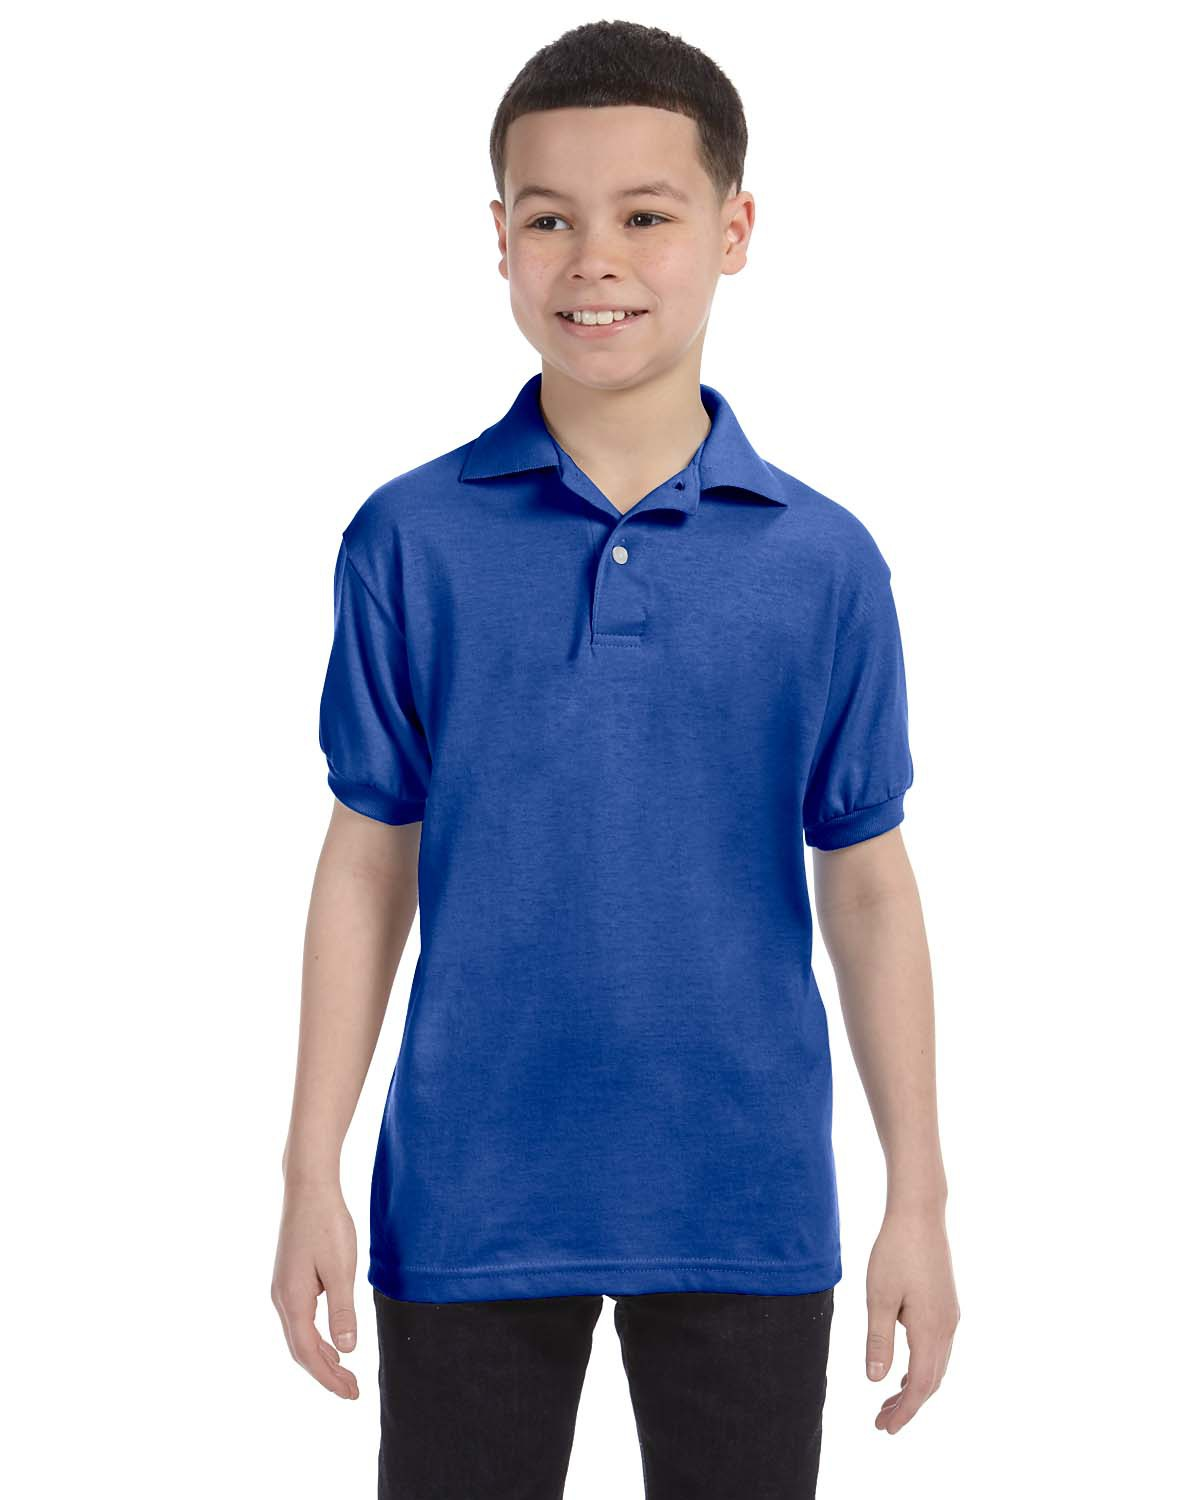 Hanes 054Y-Youth Jersey 50/50 Sport Shirt